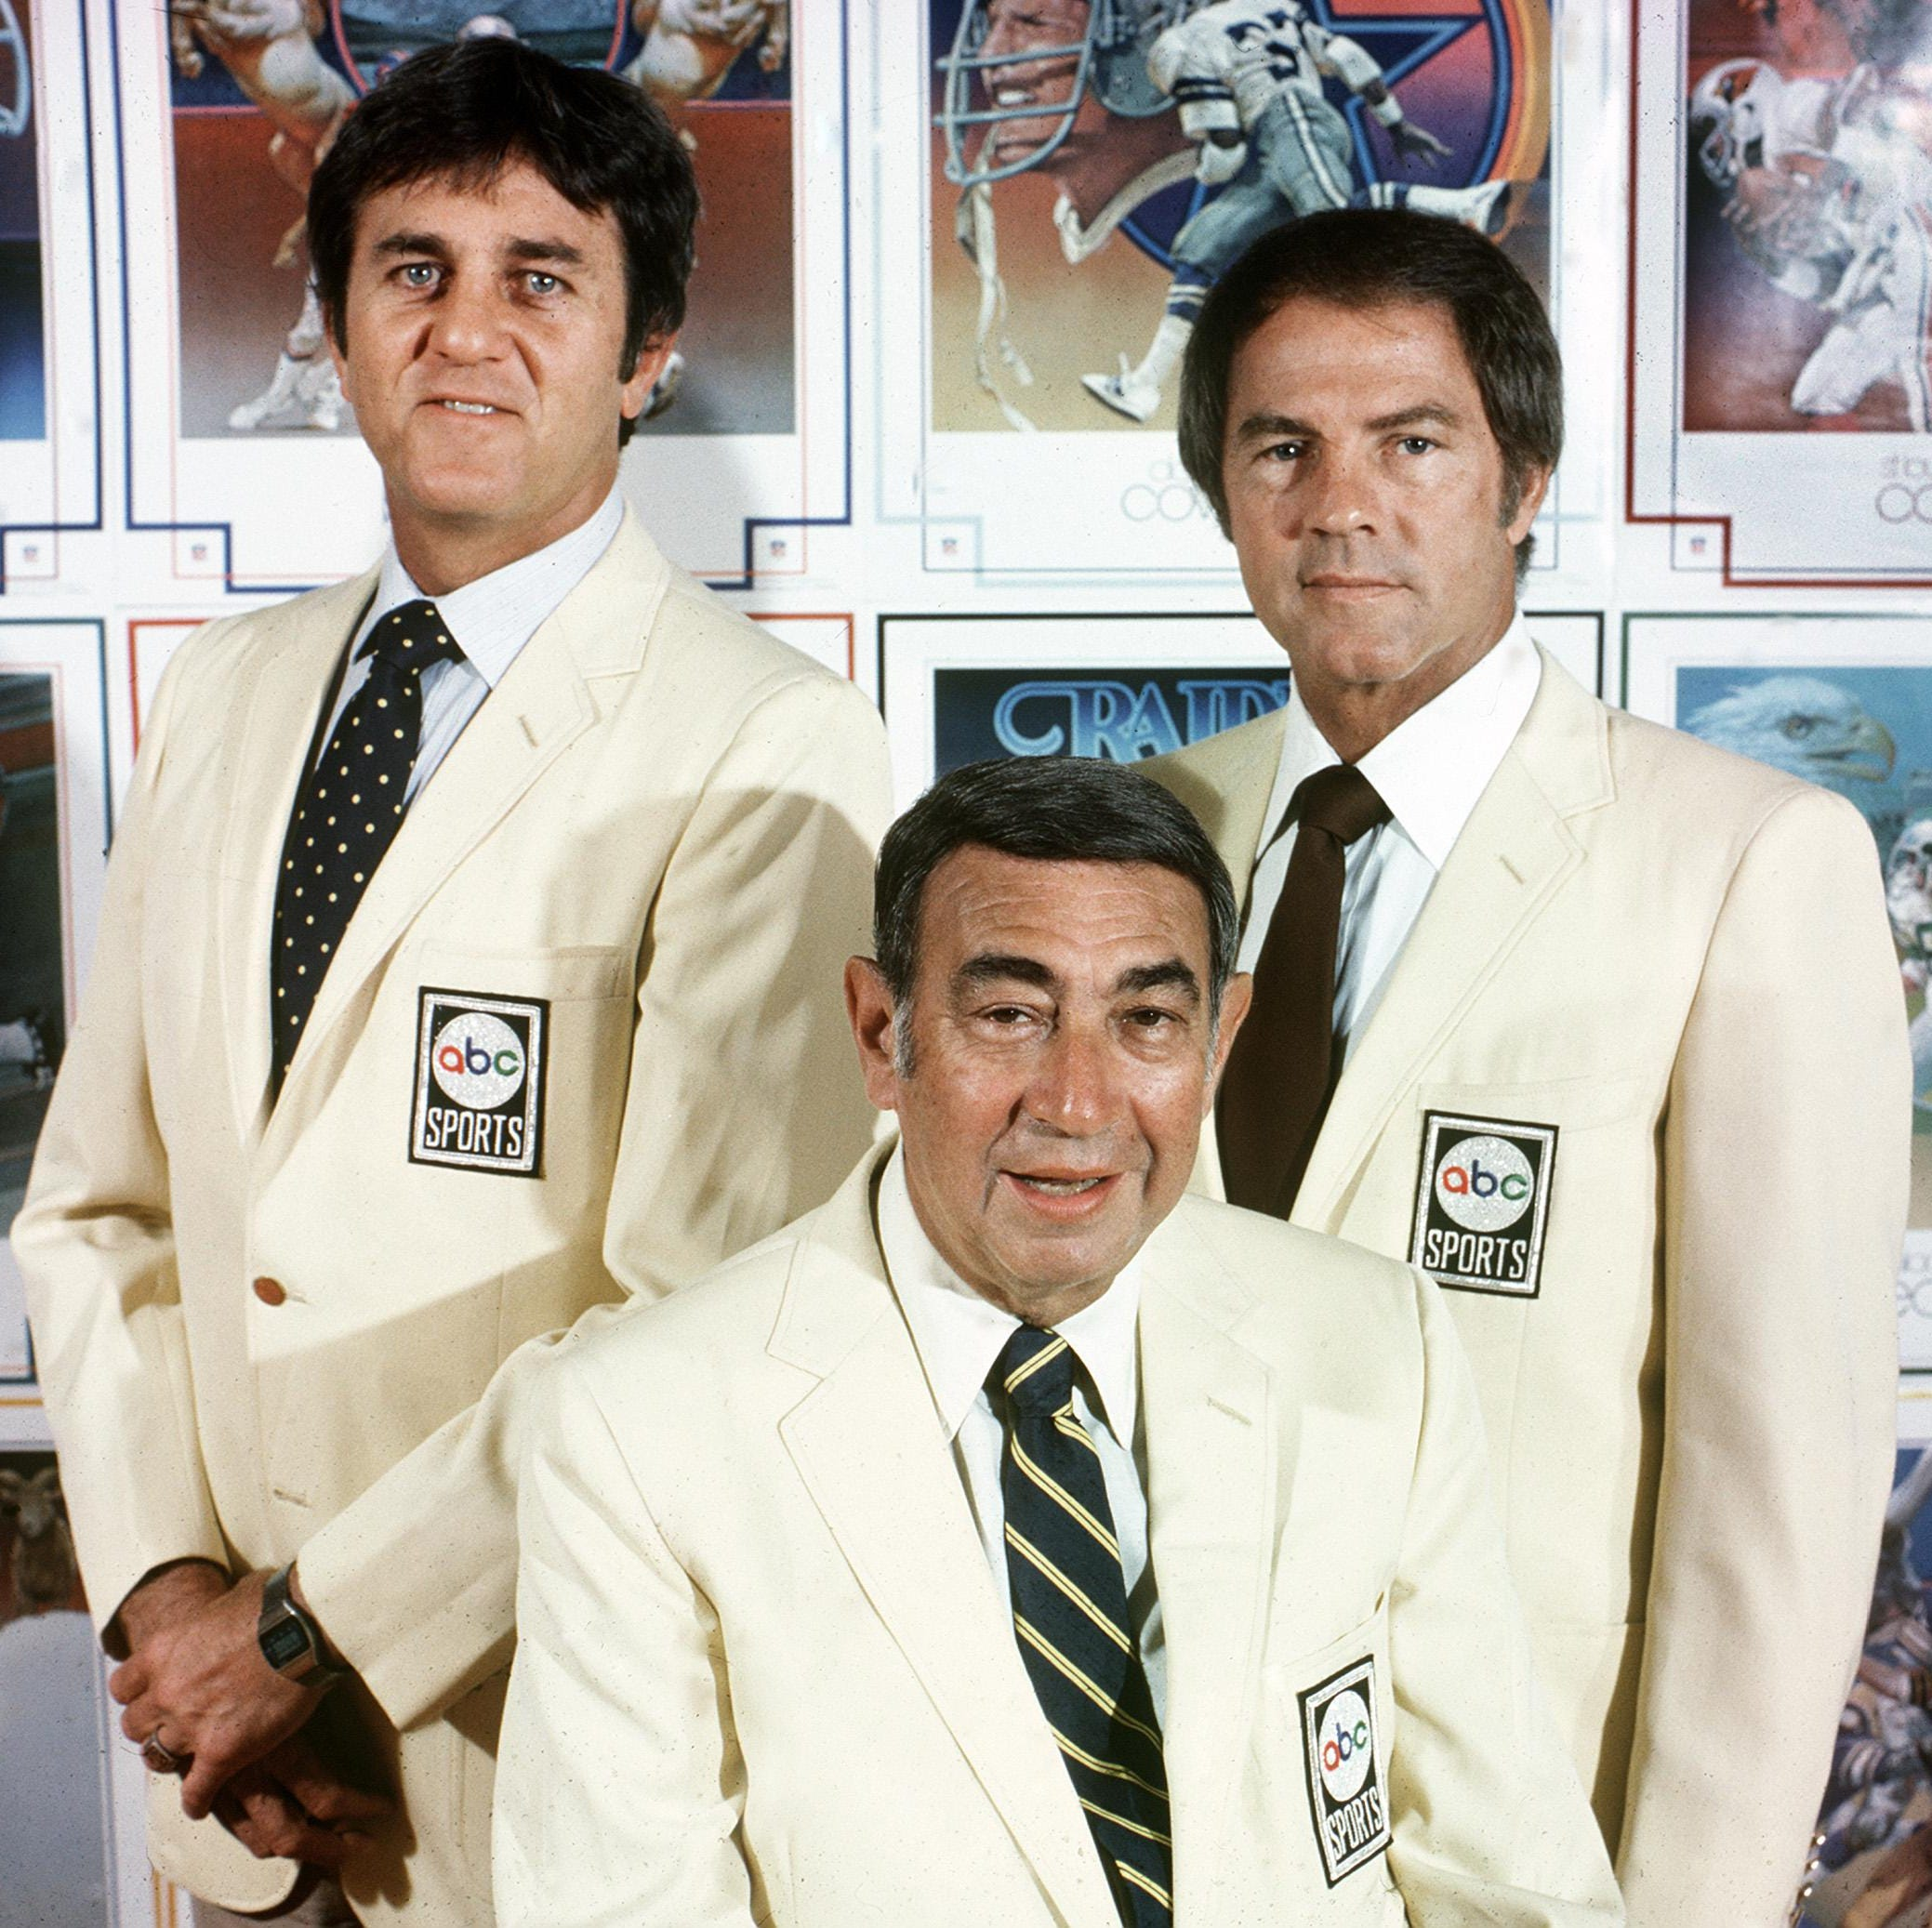 The best NFL broadcast team ever? This bunch